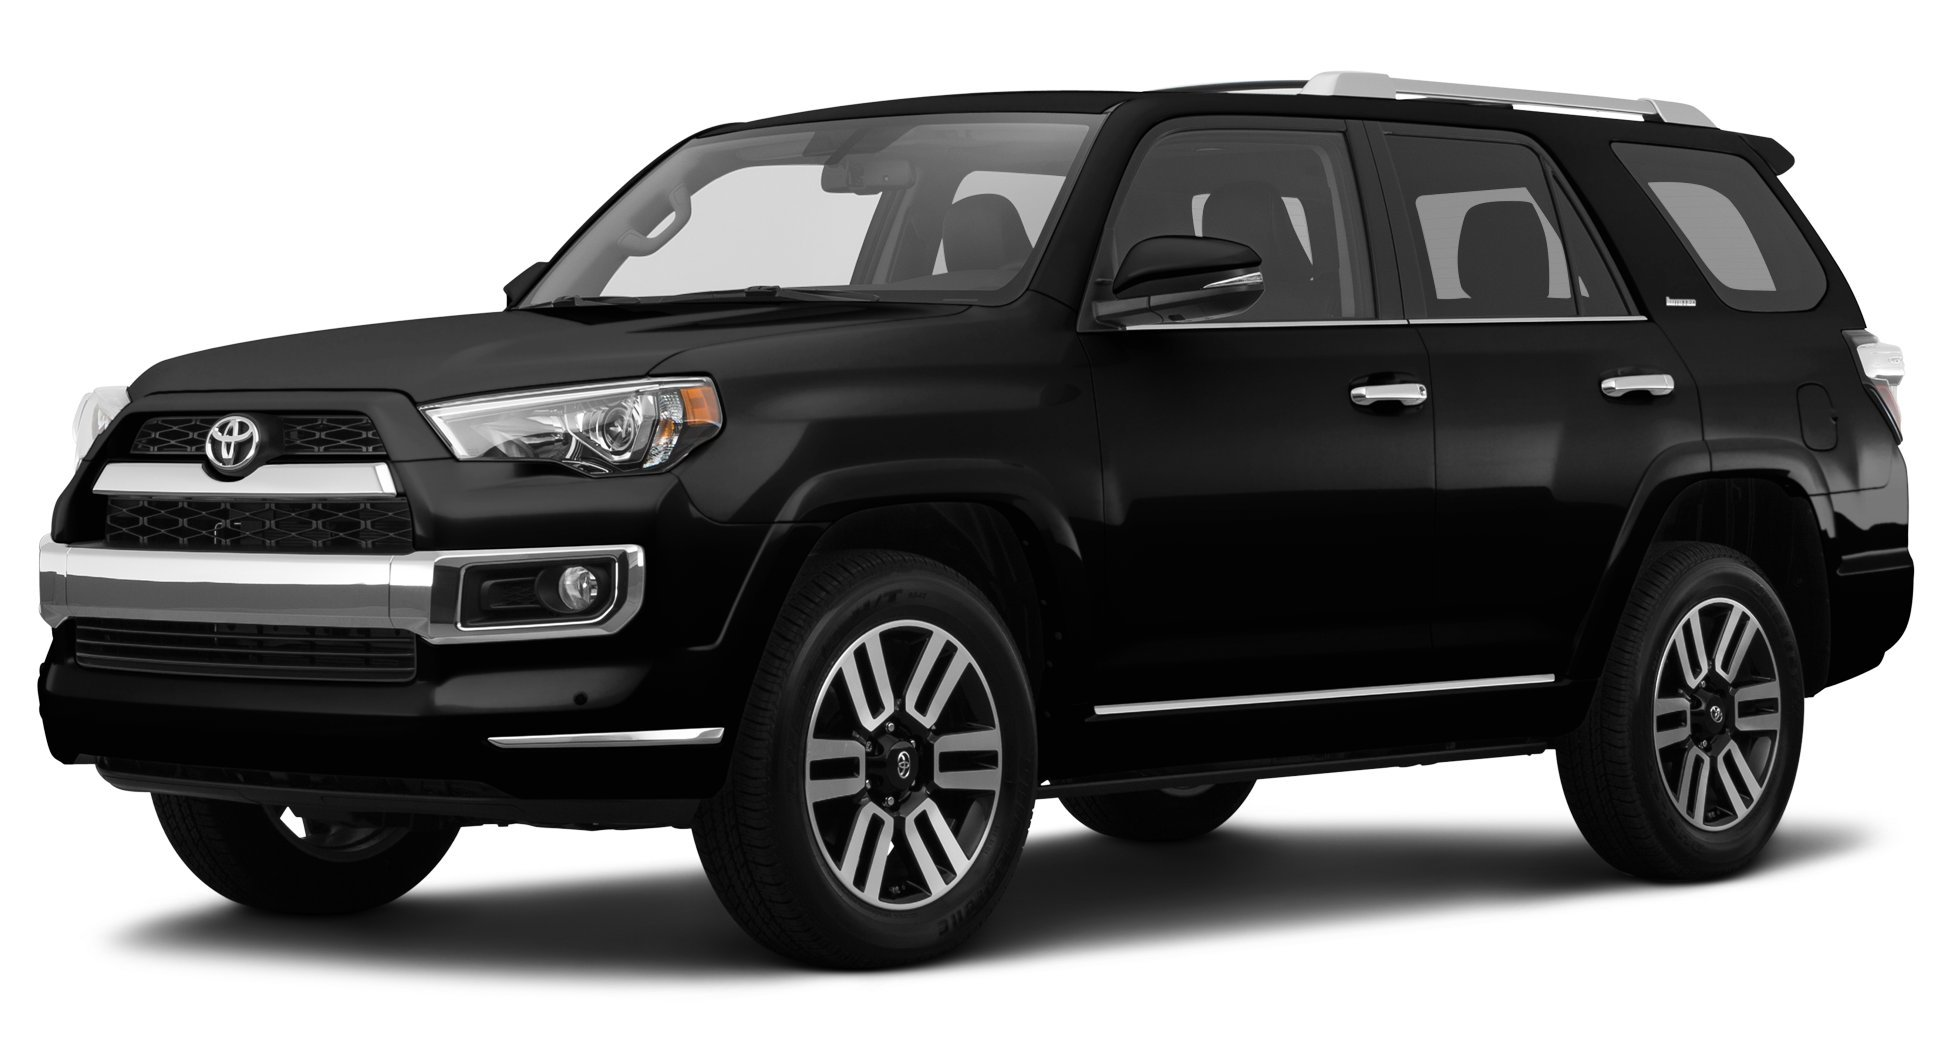 2015 toyota 4runner reviews images and specs vehicles. Black Bedroom Furniture Sets. Home Design Ideas